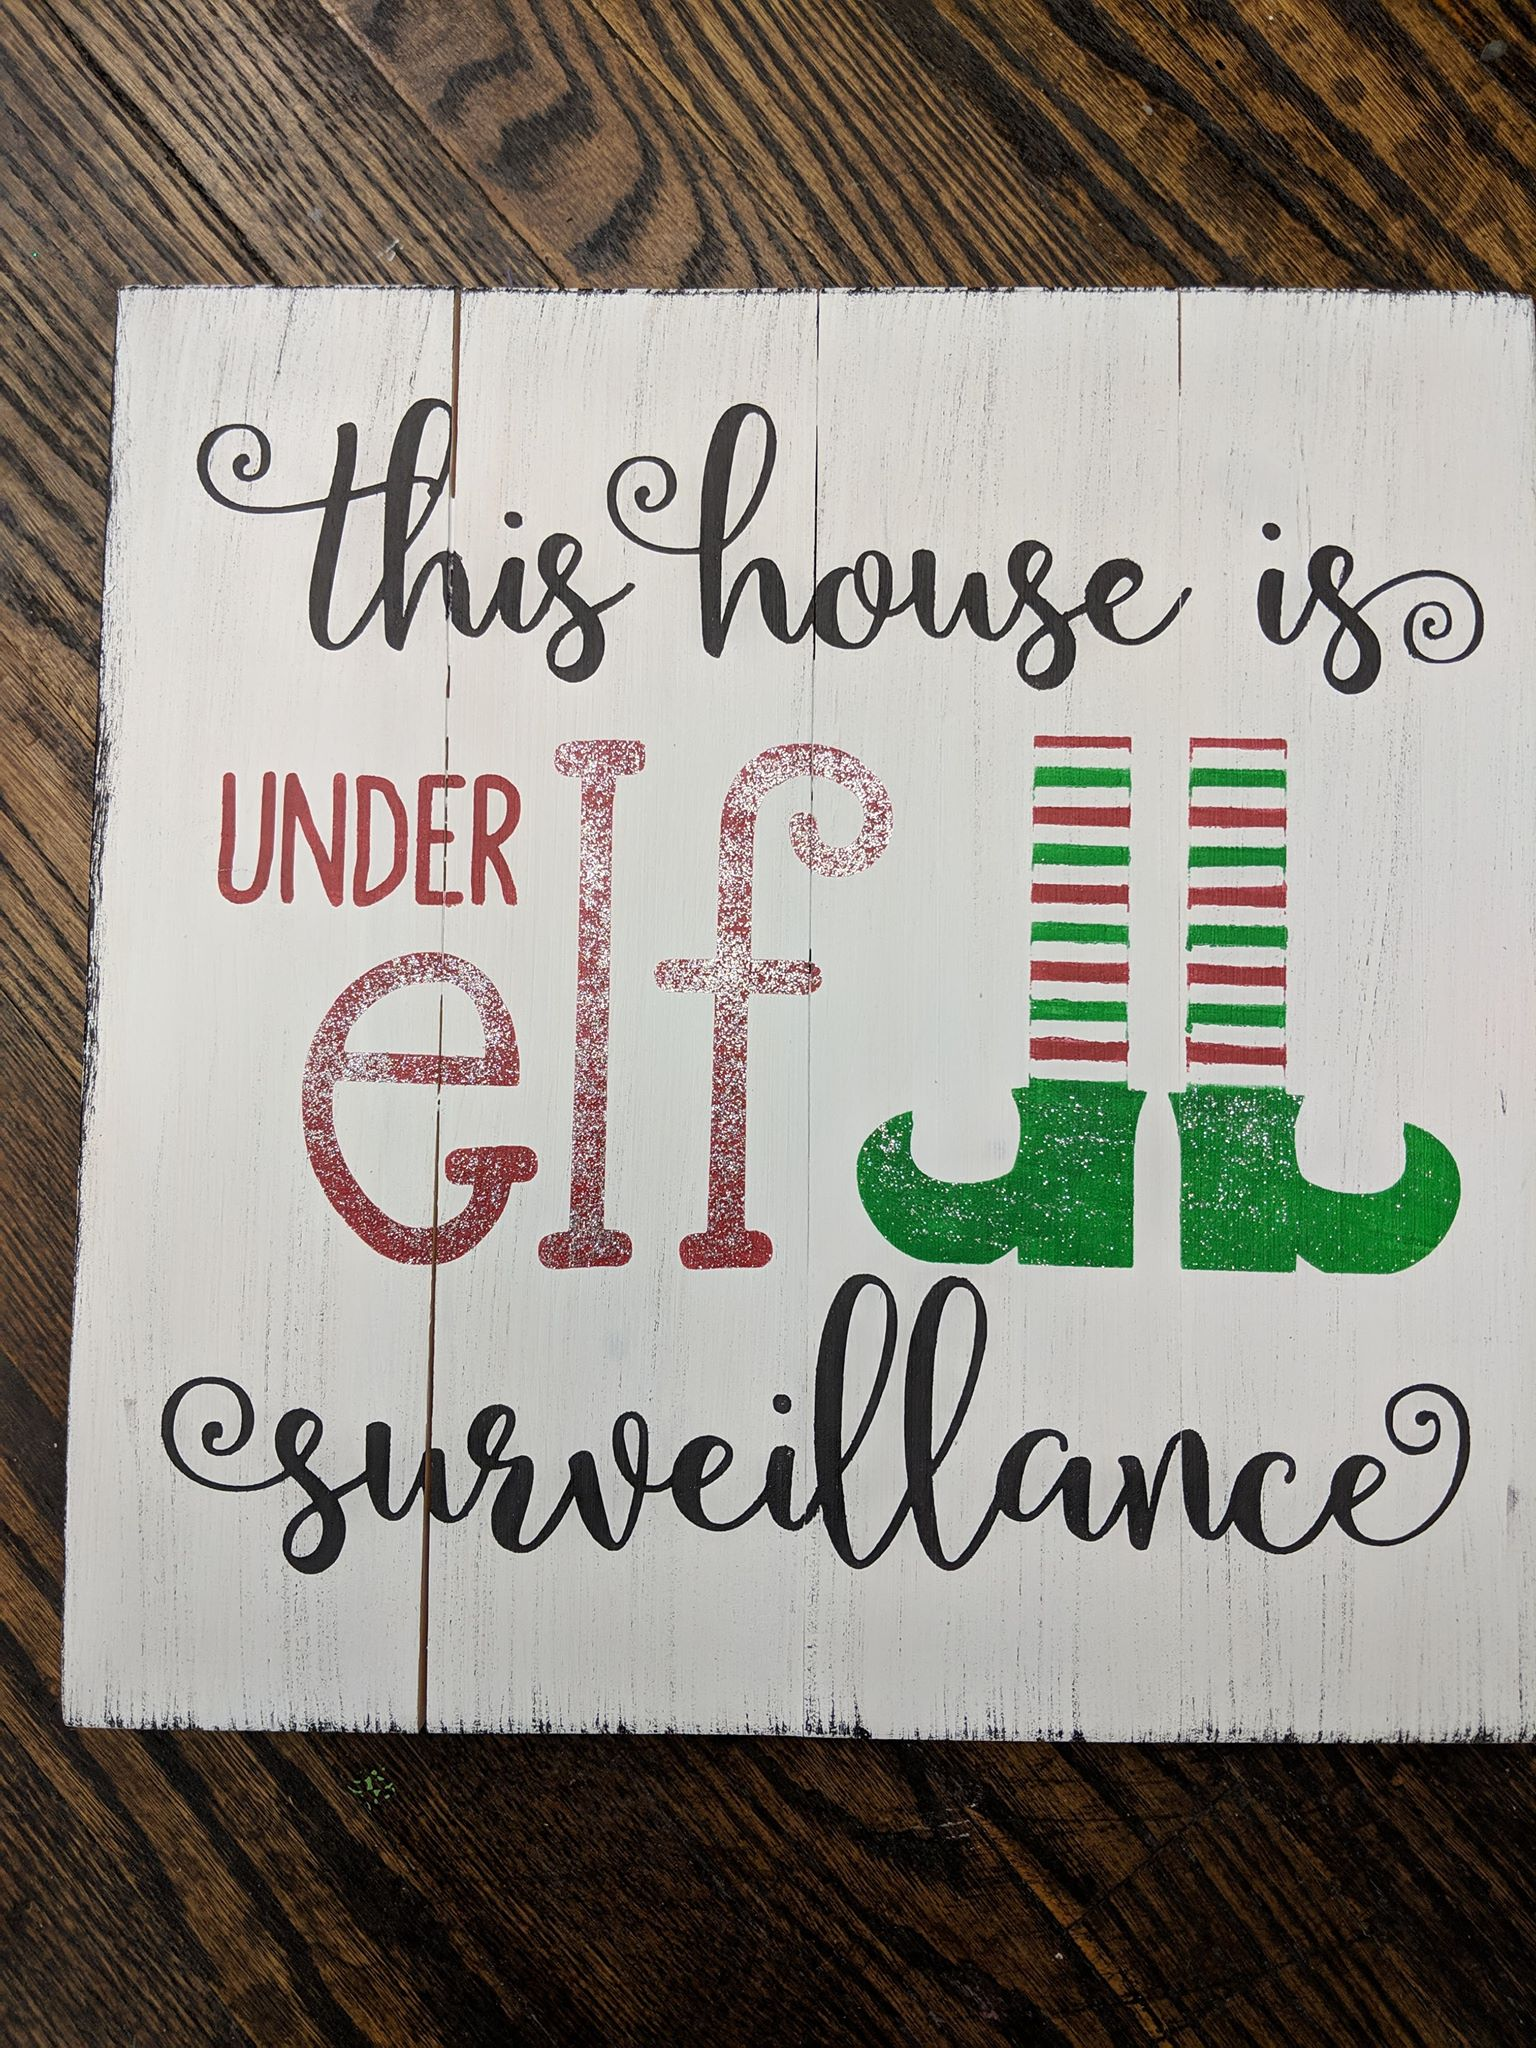 This house is under elf surveillance